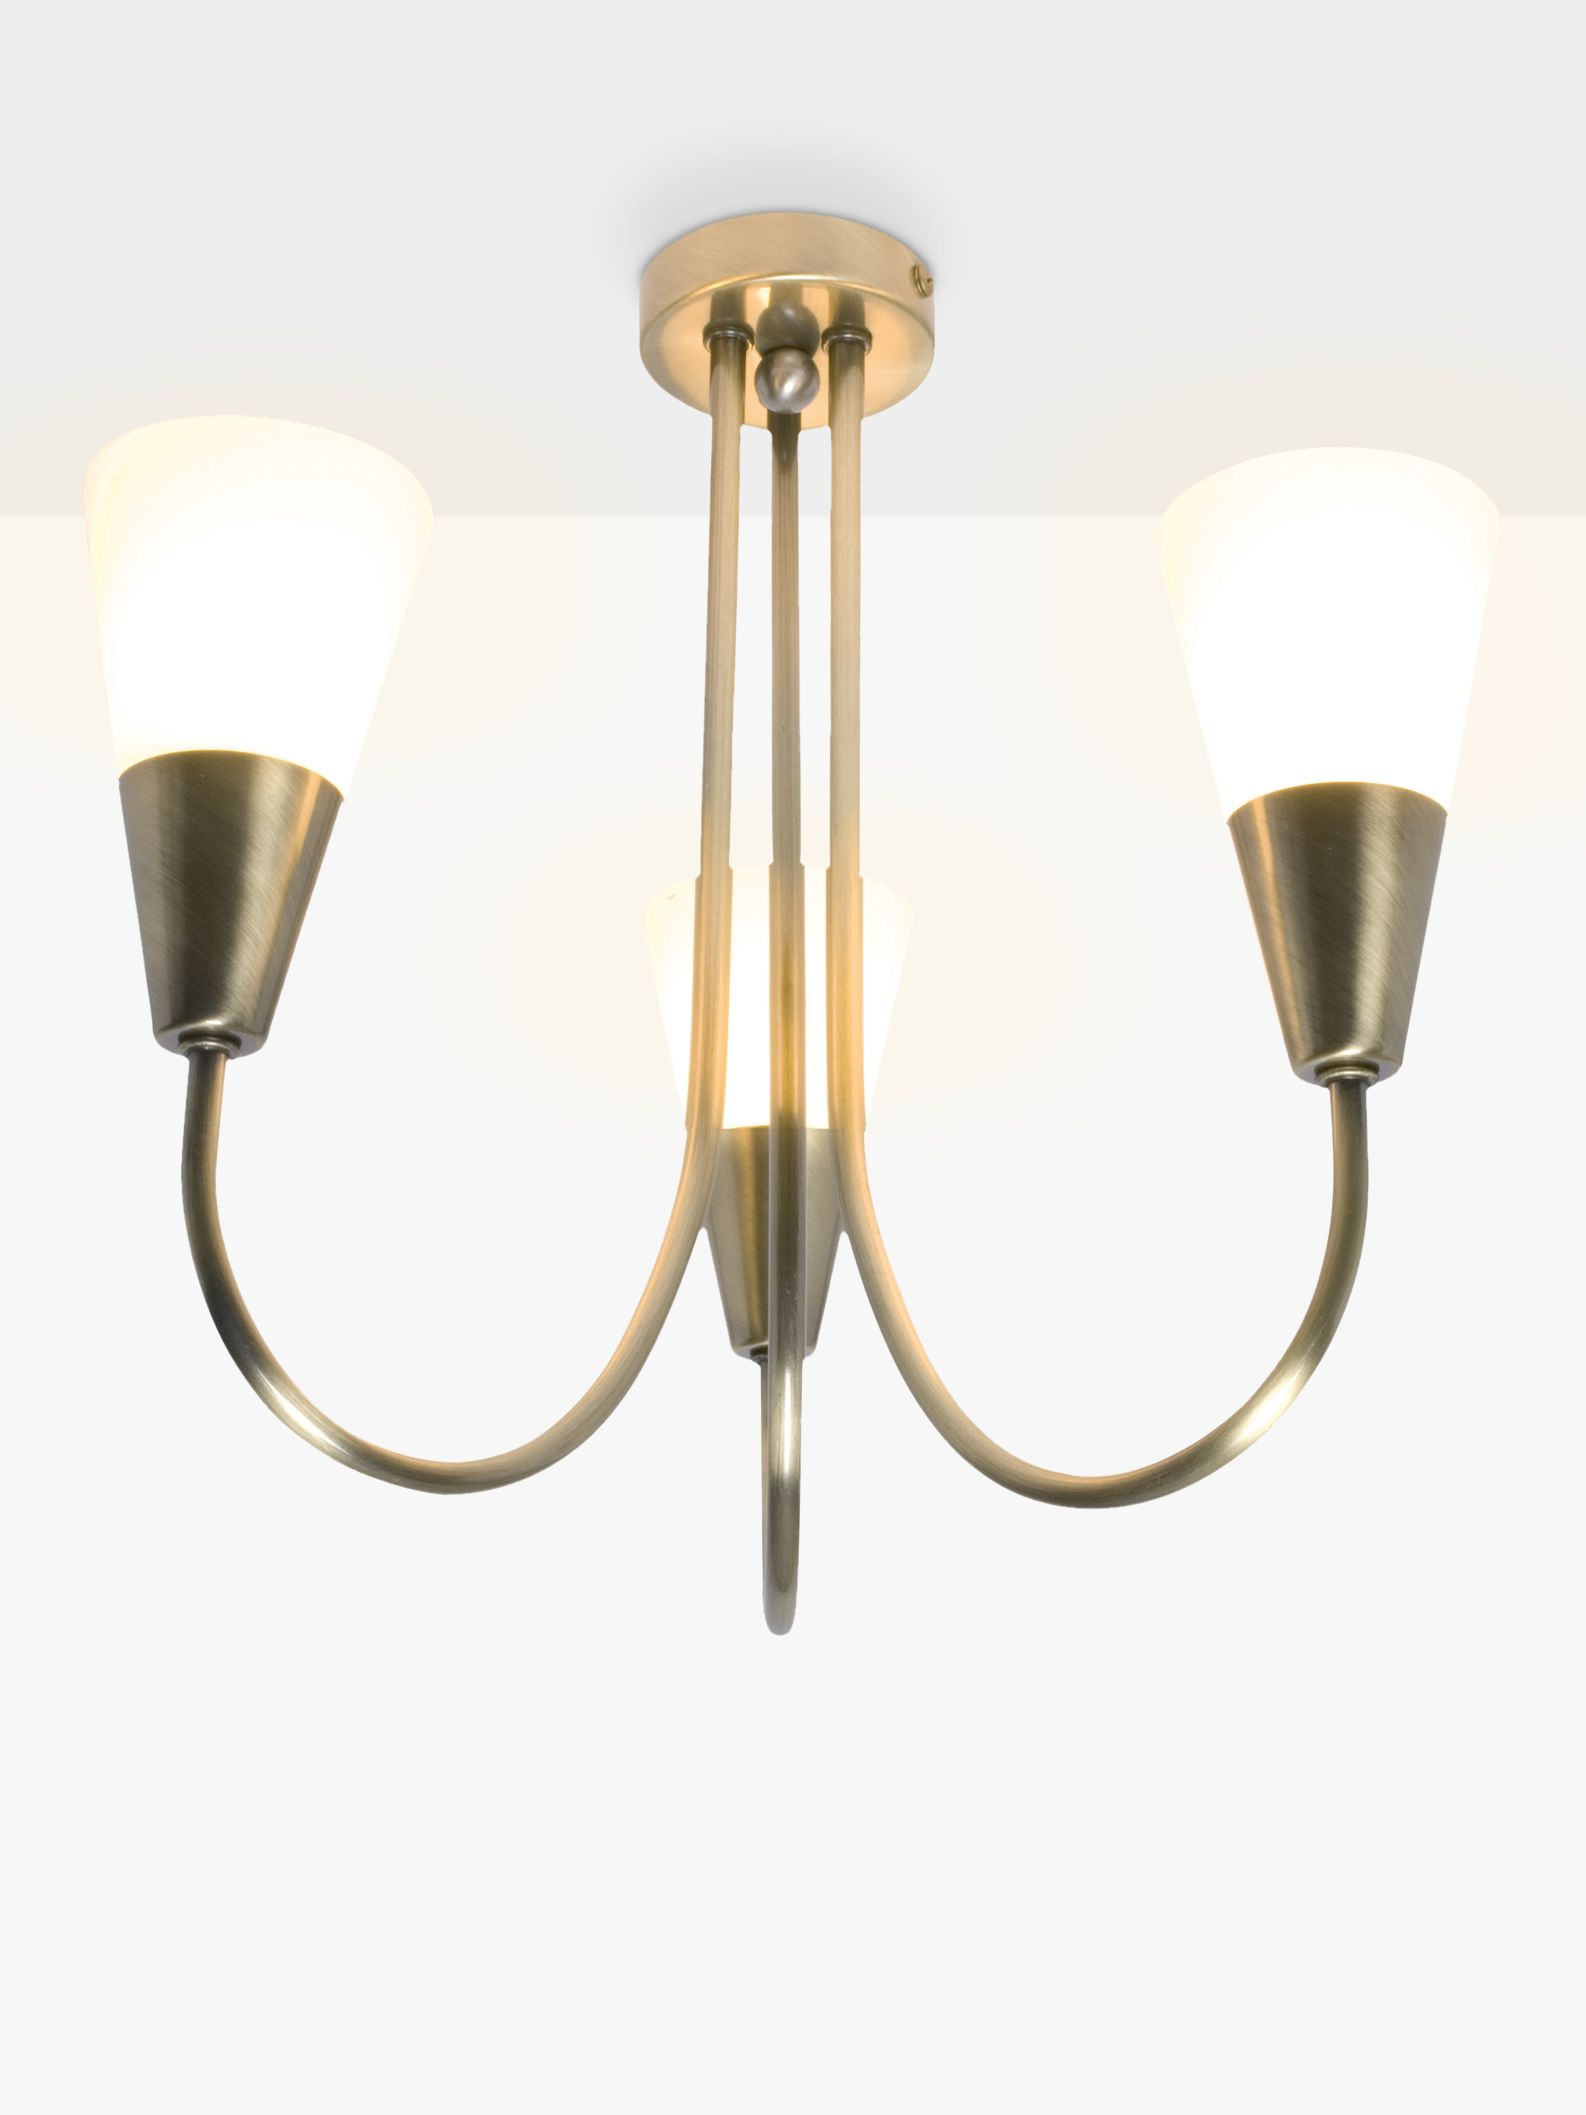 Ceiling Light Fittings At John Lewis : John lewis value lulu ceiling light arm review